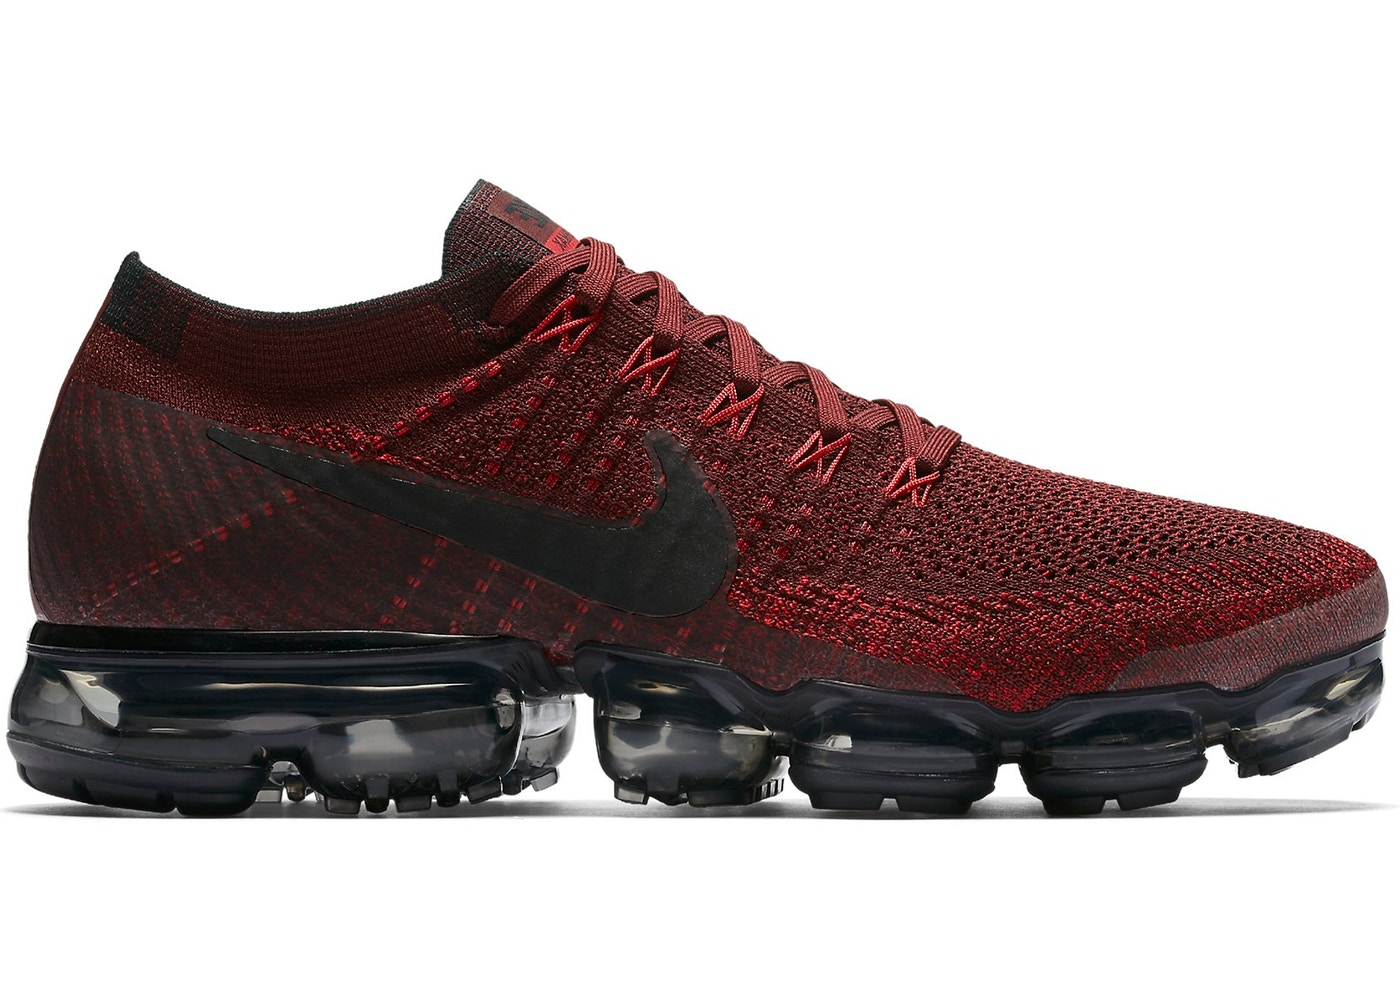 c13f0909bbba5 Air VaporMax Dark Team Red - 849558-601